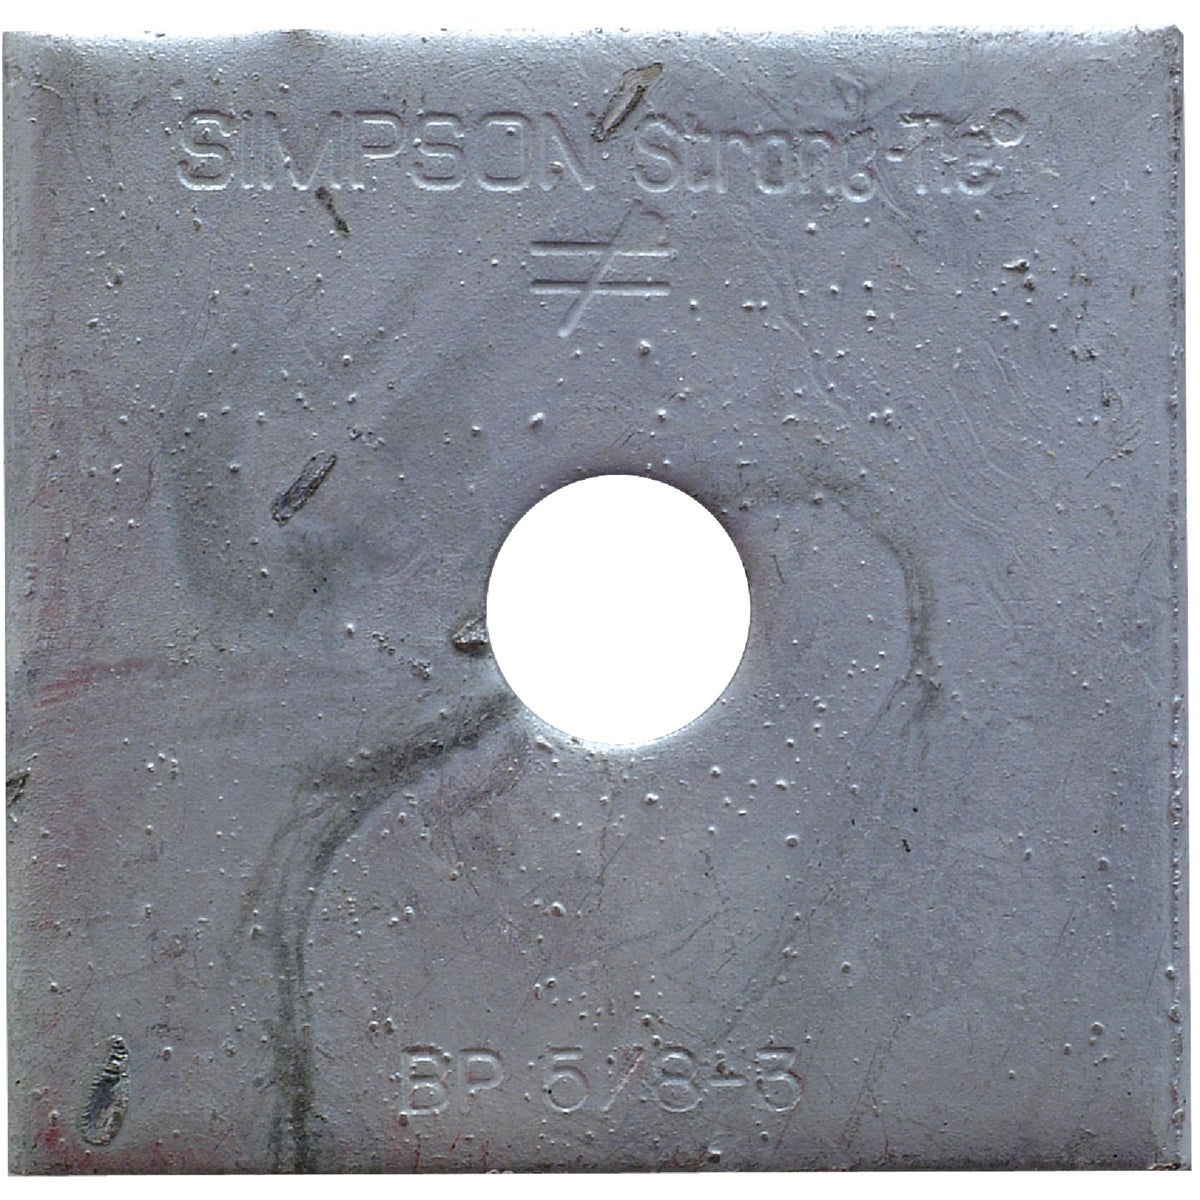 5/8-3 HDG BEARING PLATE - BP 5/8-3HDG by Simpson Strong Tie